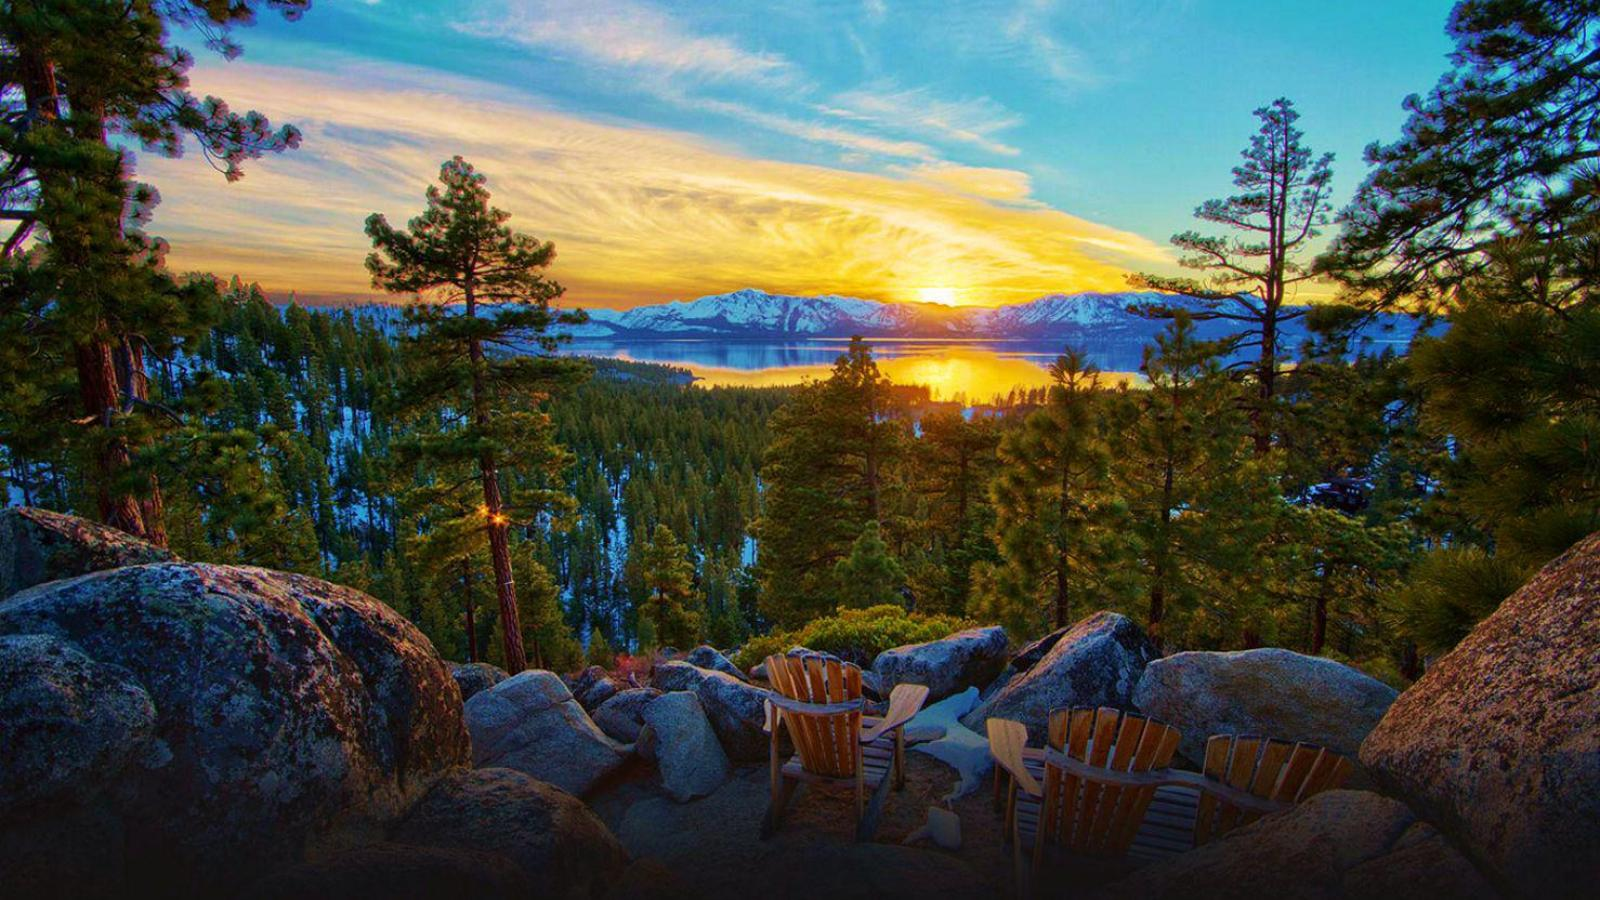 at lake tahoe   92974   High Quality and Resolution Wallpapers 1600x900